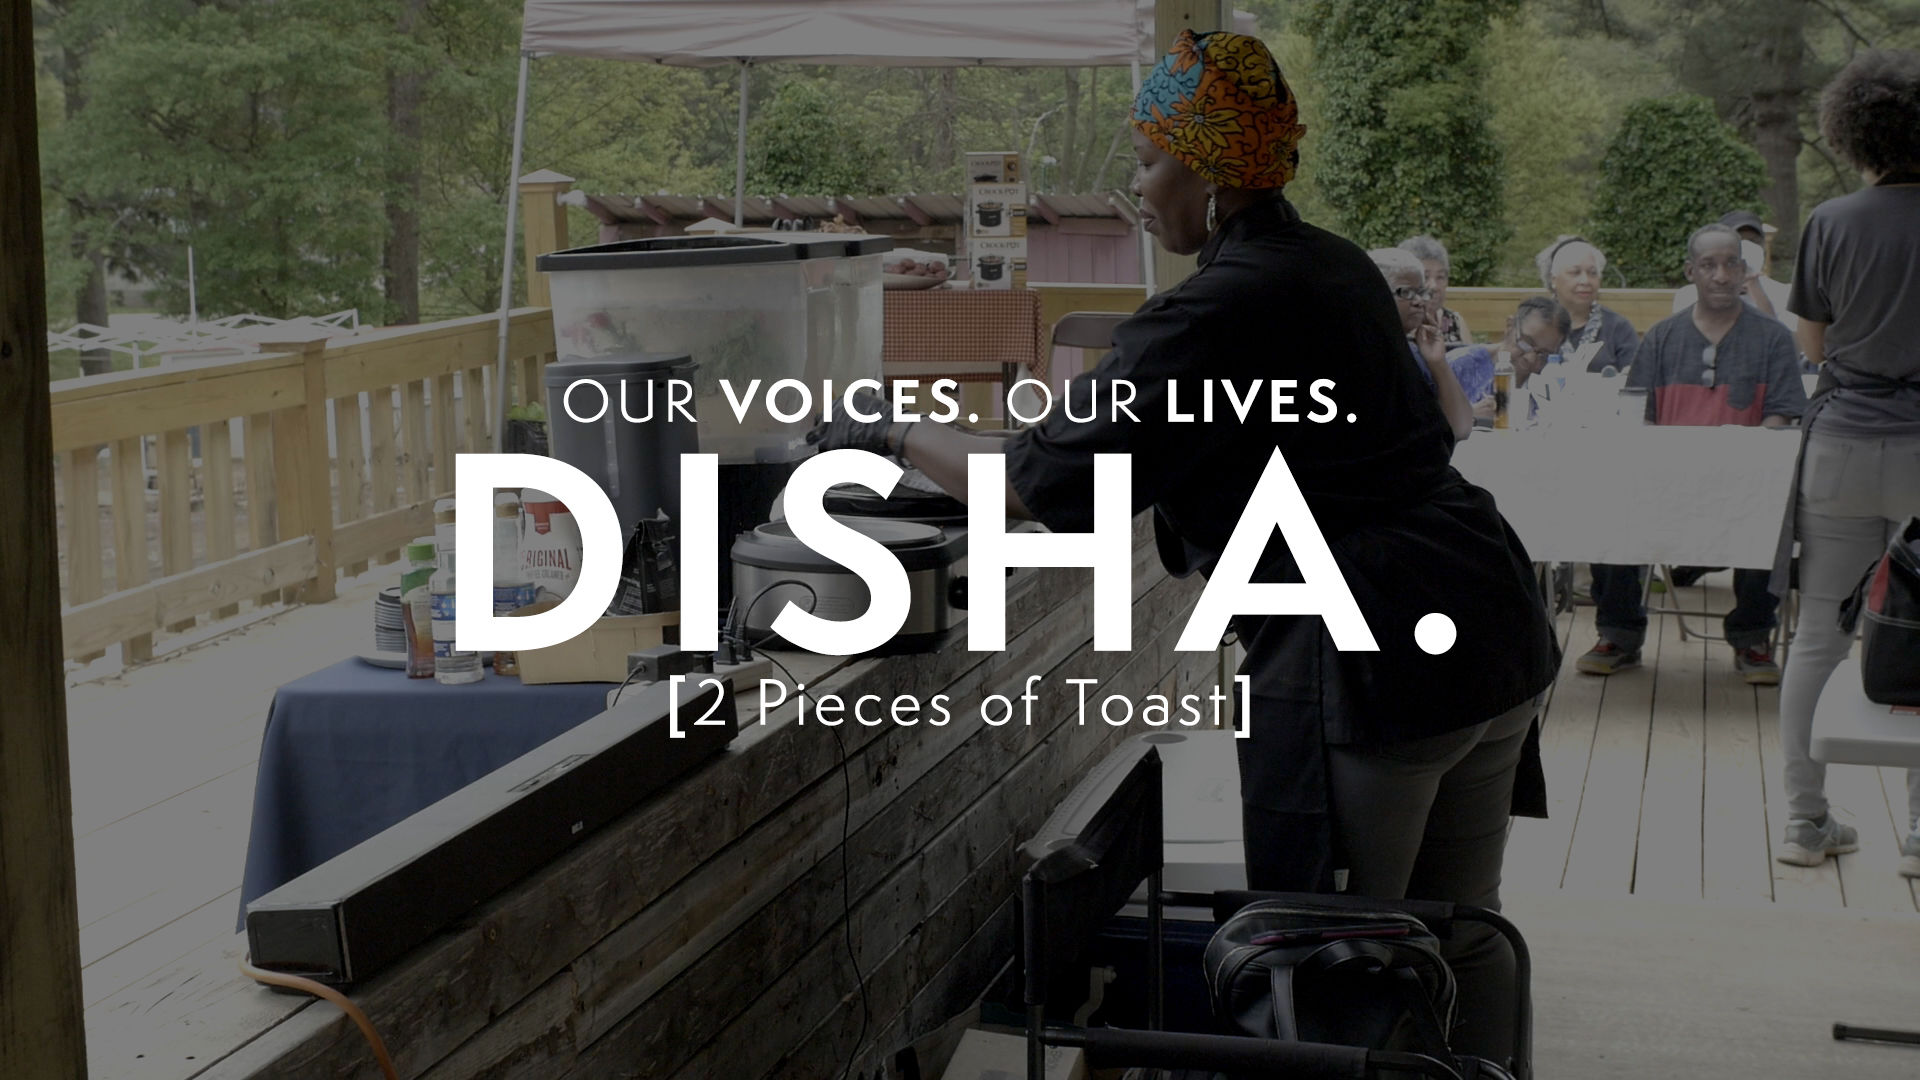 Our Voices. Our Lives. presents 2 PIECES OF TOAST.